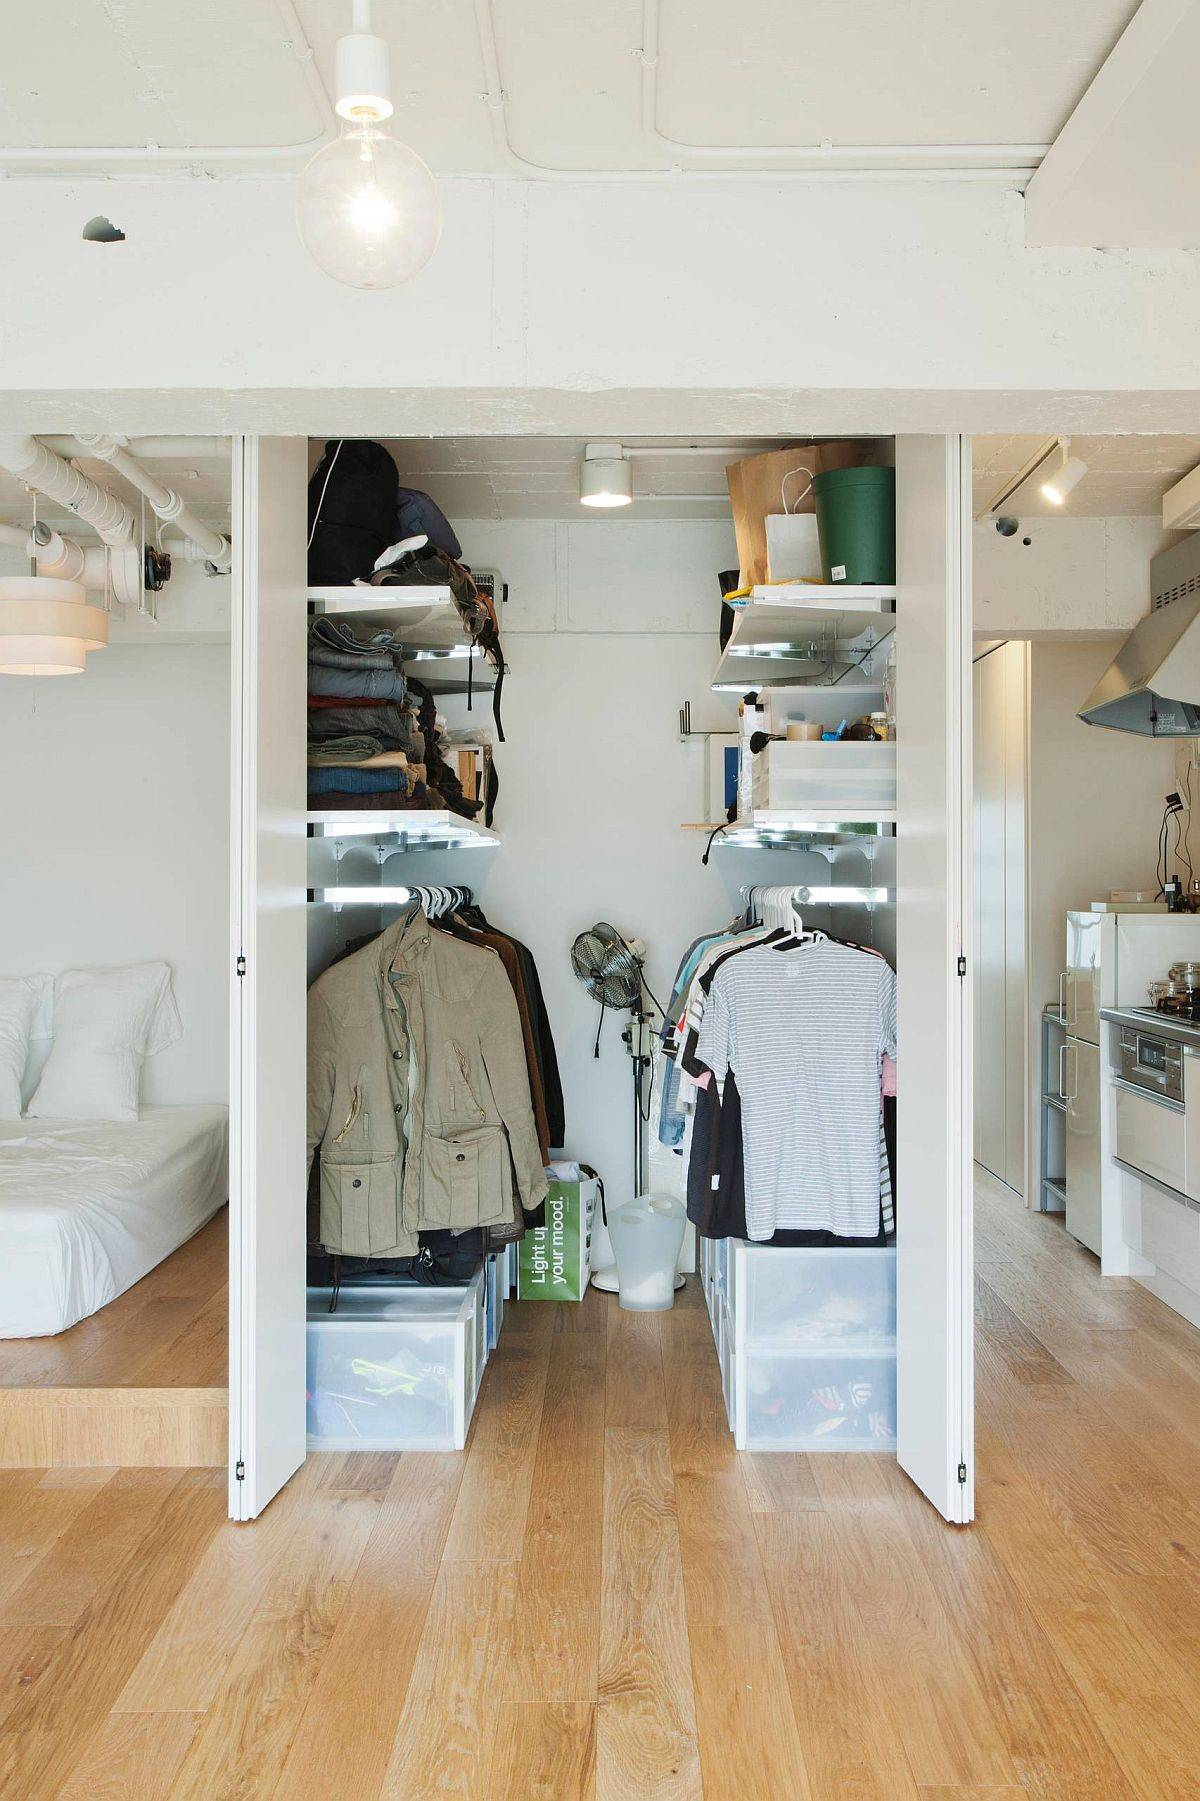 Everything from shelves and rods to boxes and crates is used to shape this small men's closet